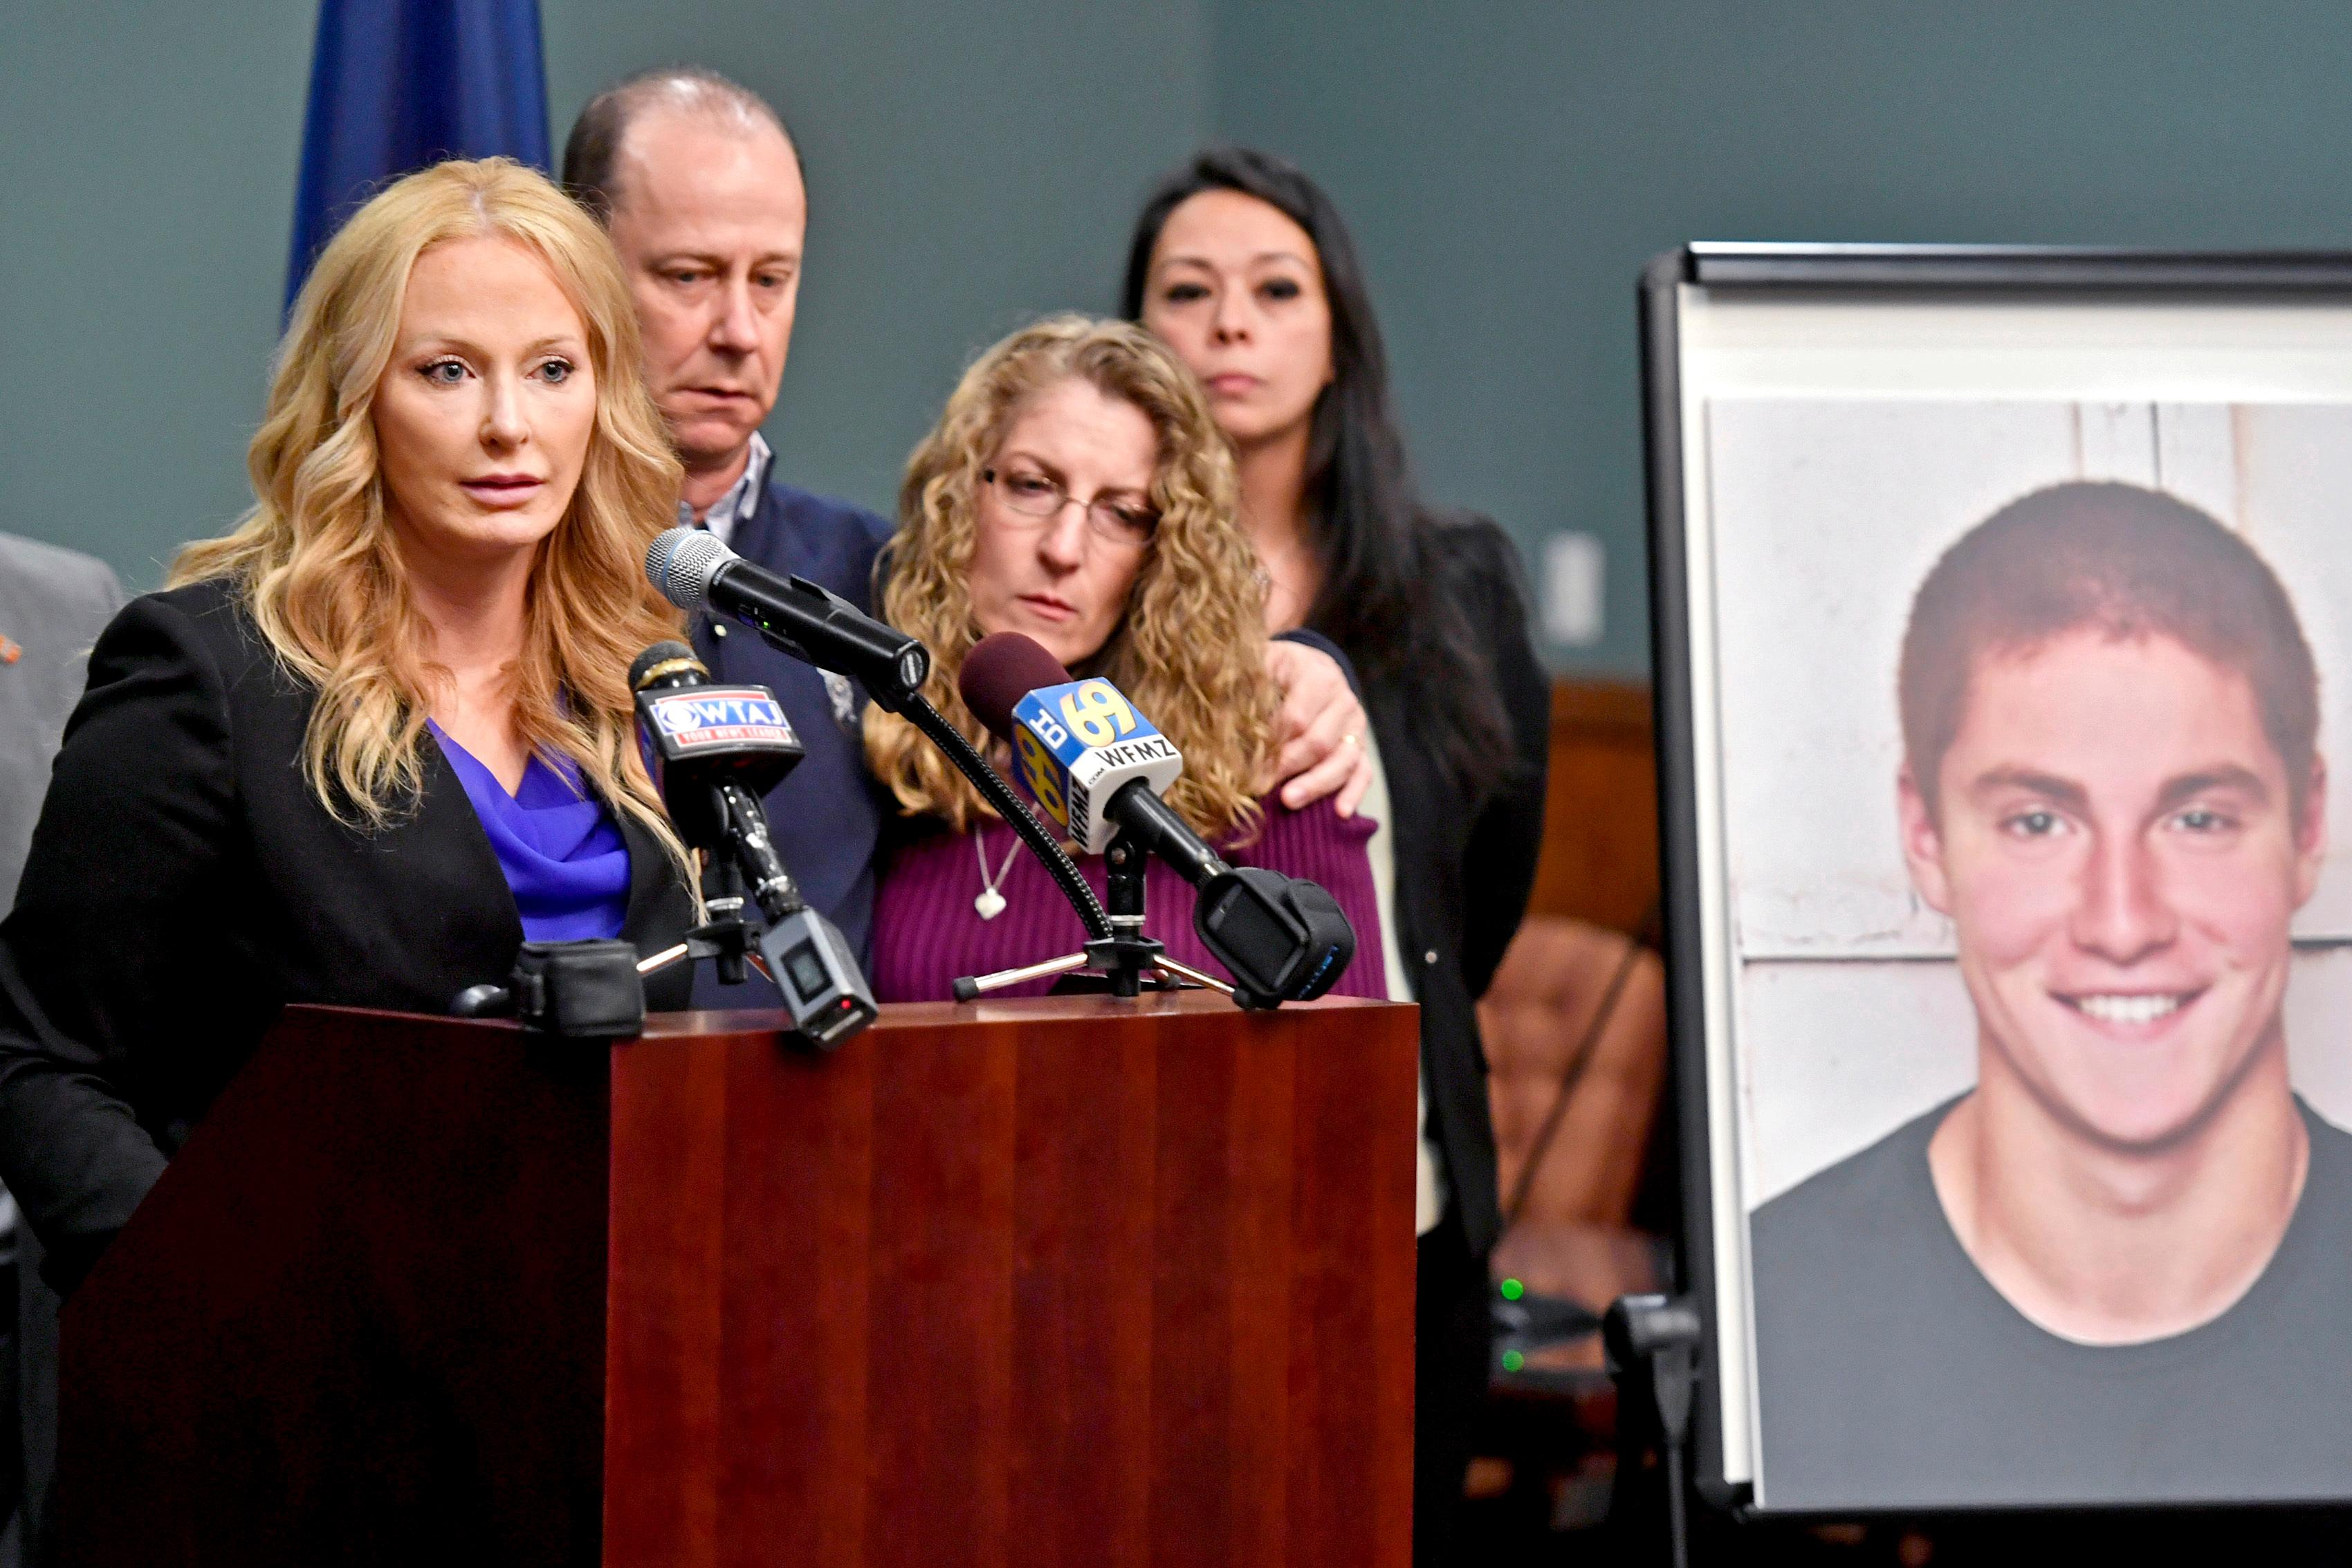 FILE – In this May 5, 2017, file photo, Centre County, Pa., District Attorney Stacy Parks Miller, left, announces findings an investigation into the death of Penn State University fraternity pledge Tim Piazza, seen in photo at right, as his parents, Jim and Evelyn Piazza, second and third from left, stand nearby during a news conference in Bellefonte, Pa. Parks Miller announced Monday, Nov. 13, 2017, that more charges have been filed against fraternity brothers after investigators recovered deleted surveillance video footage recorded before the Feb. 4, 2017, death of Piazza, of Lebanon, N.J., after a night of heavy drinking. (Abby Drey/Centre Daily Times via AP, File)/Centre Daily Times via AP)